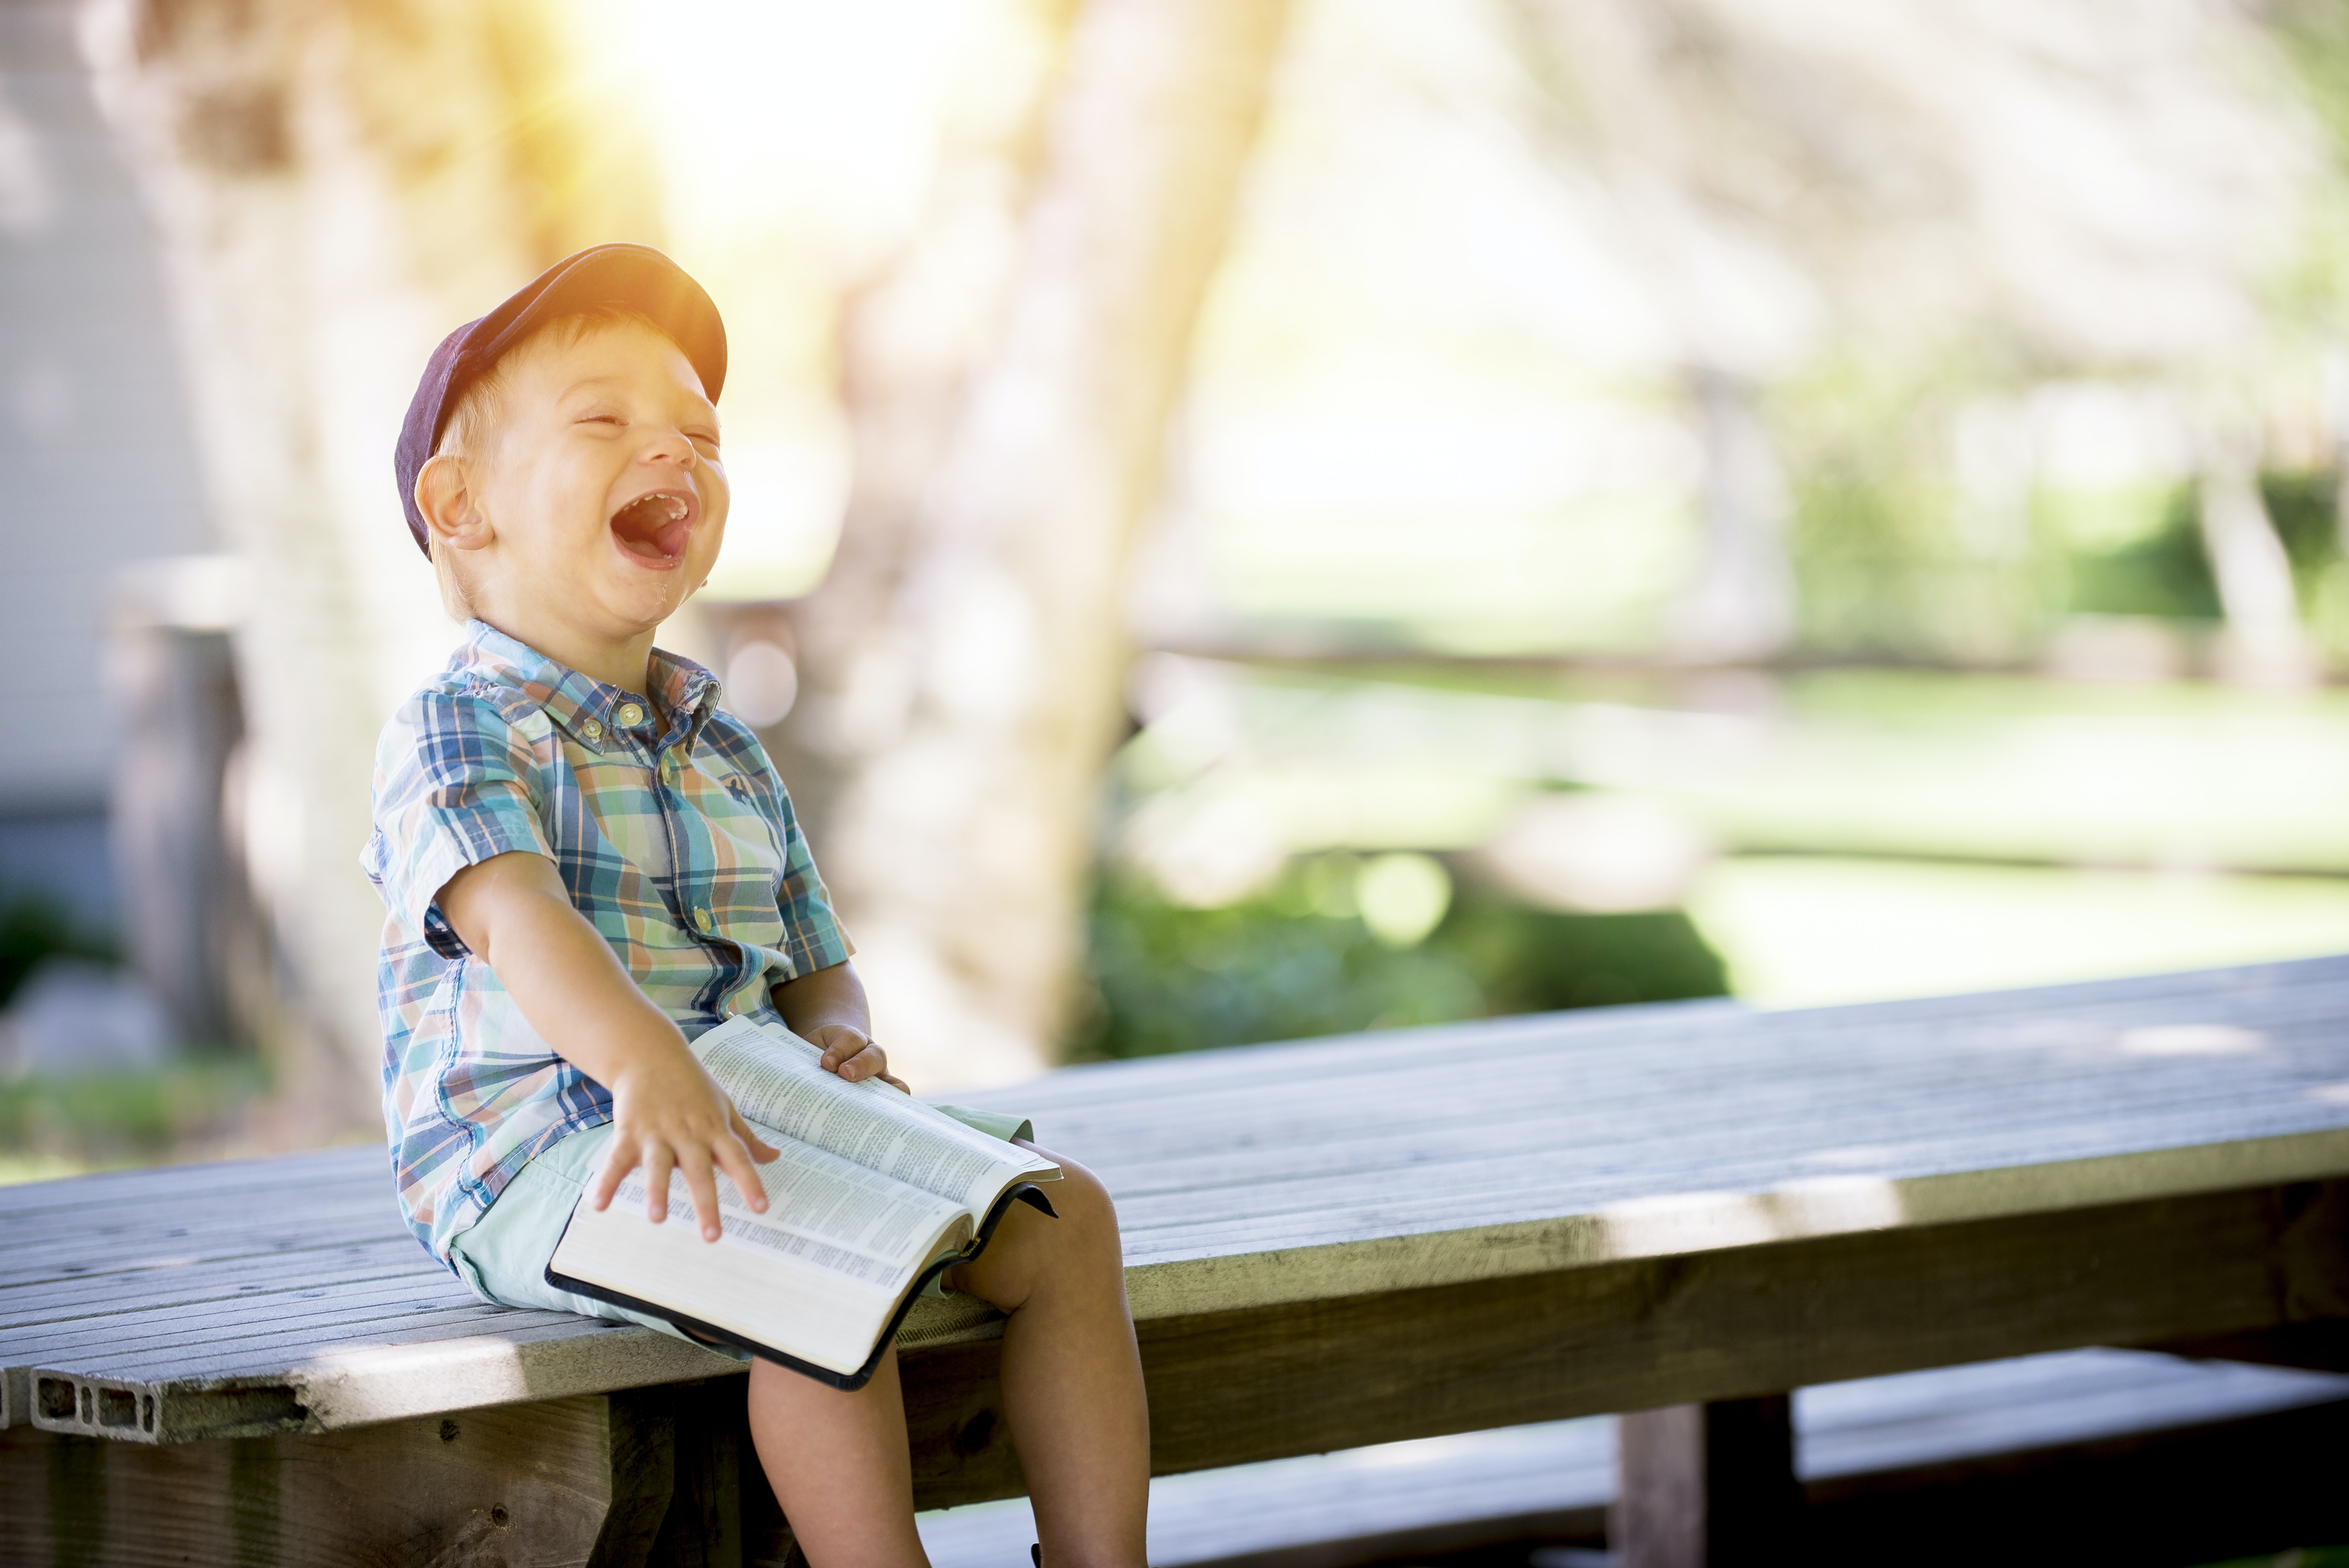 children pictures [hq] download free images on unsplashboy sitting on bench while holding a book